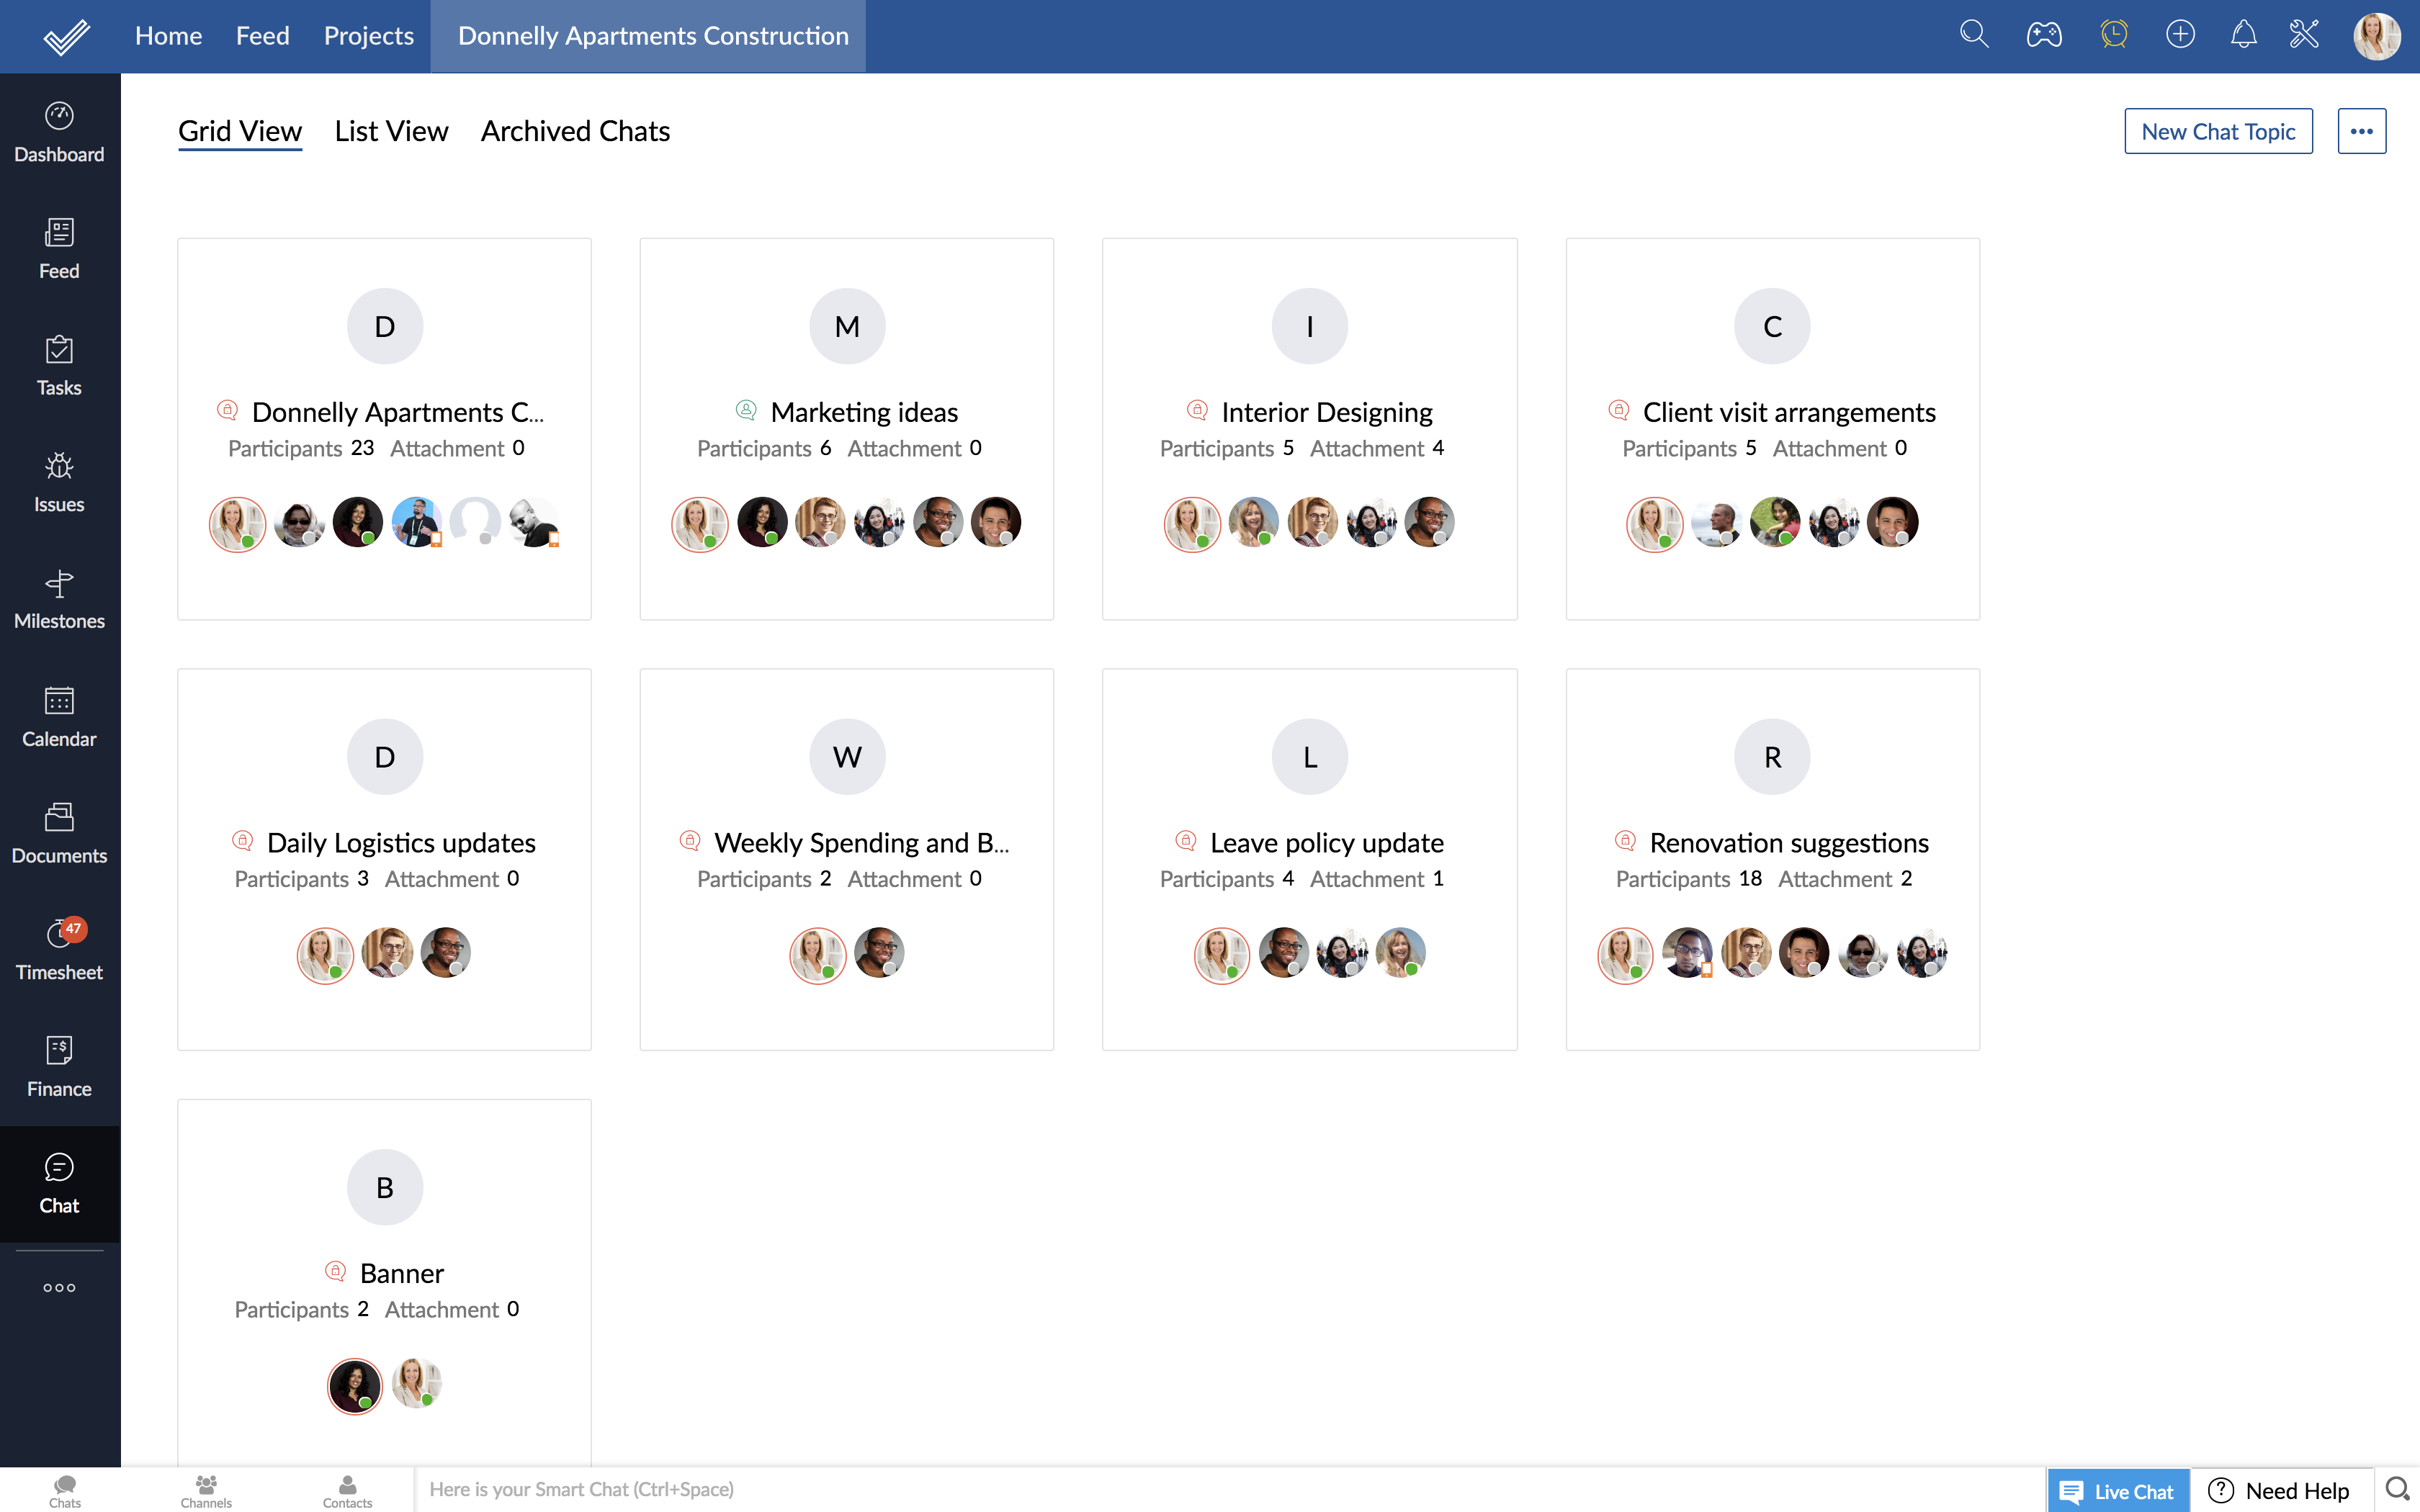 Project Management Tools | Project Management System - Zoho